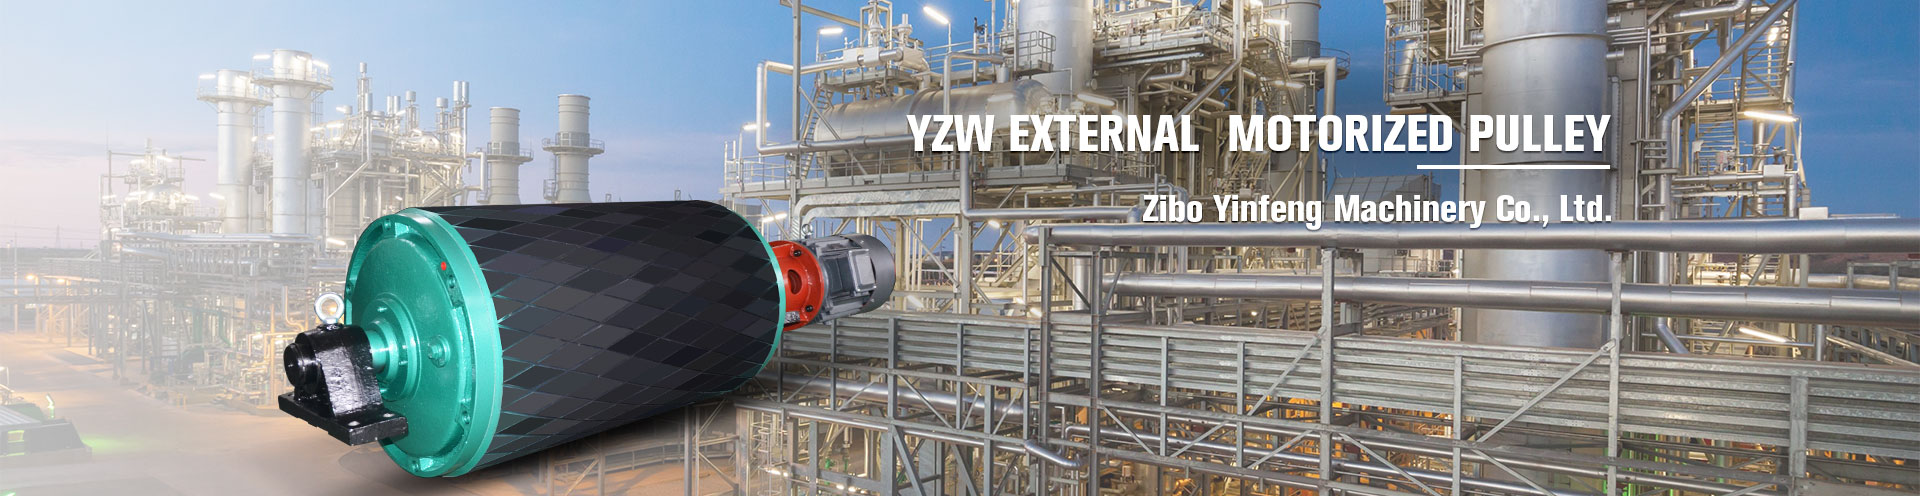 YZW Type Build-out、YZWB(WZ) Explosion-proof Build-out Motorized Drum(Motorized Pulleys)